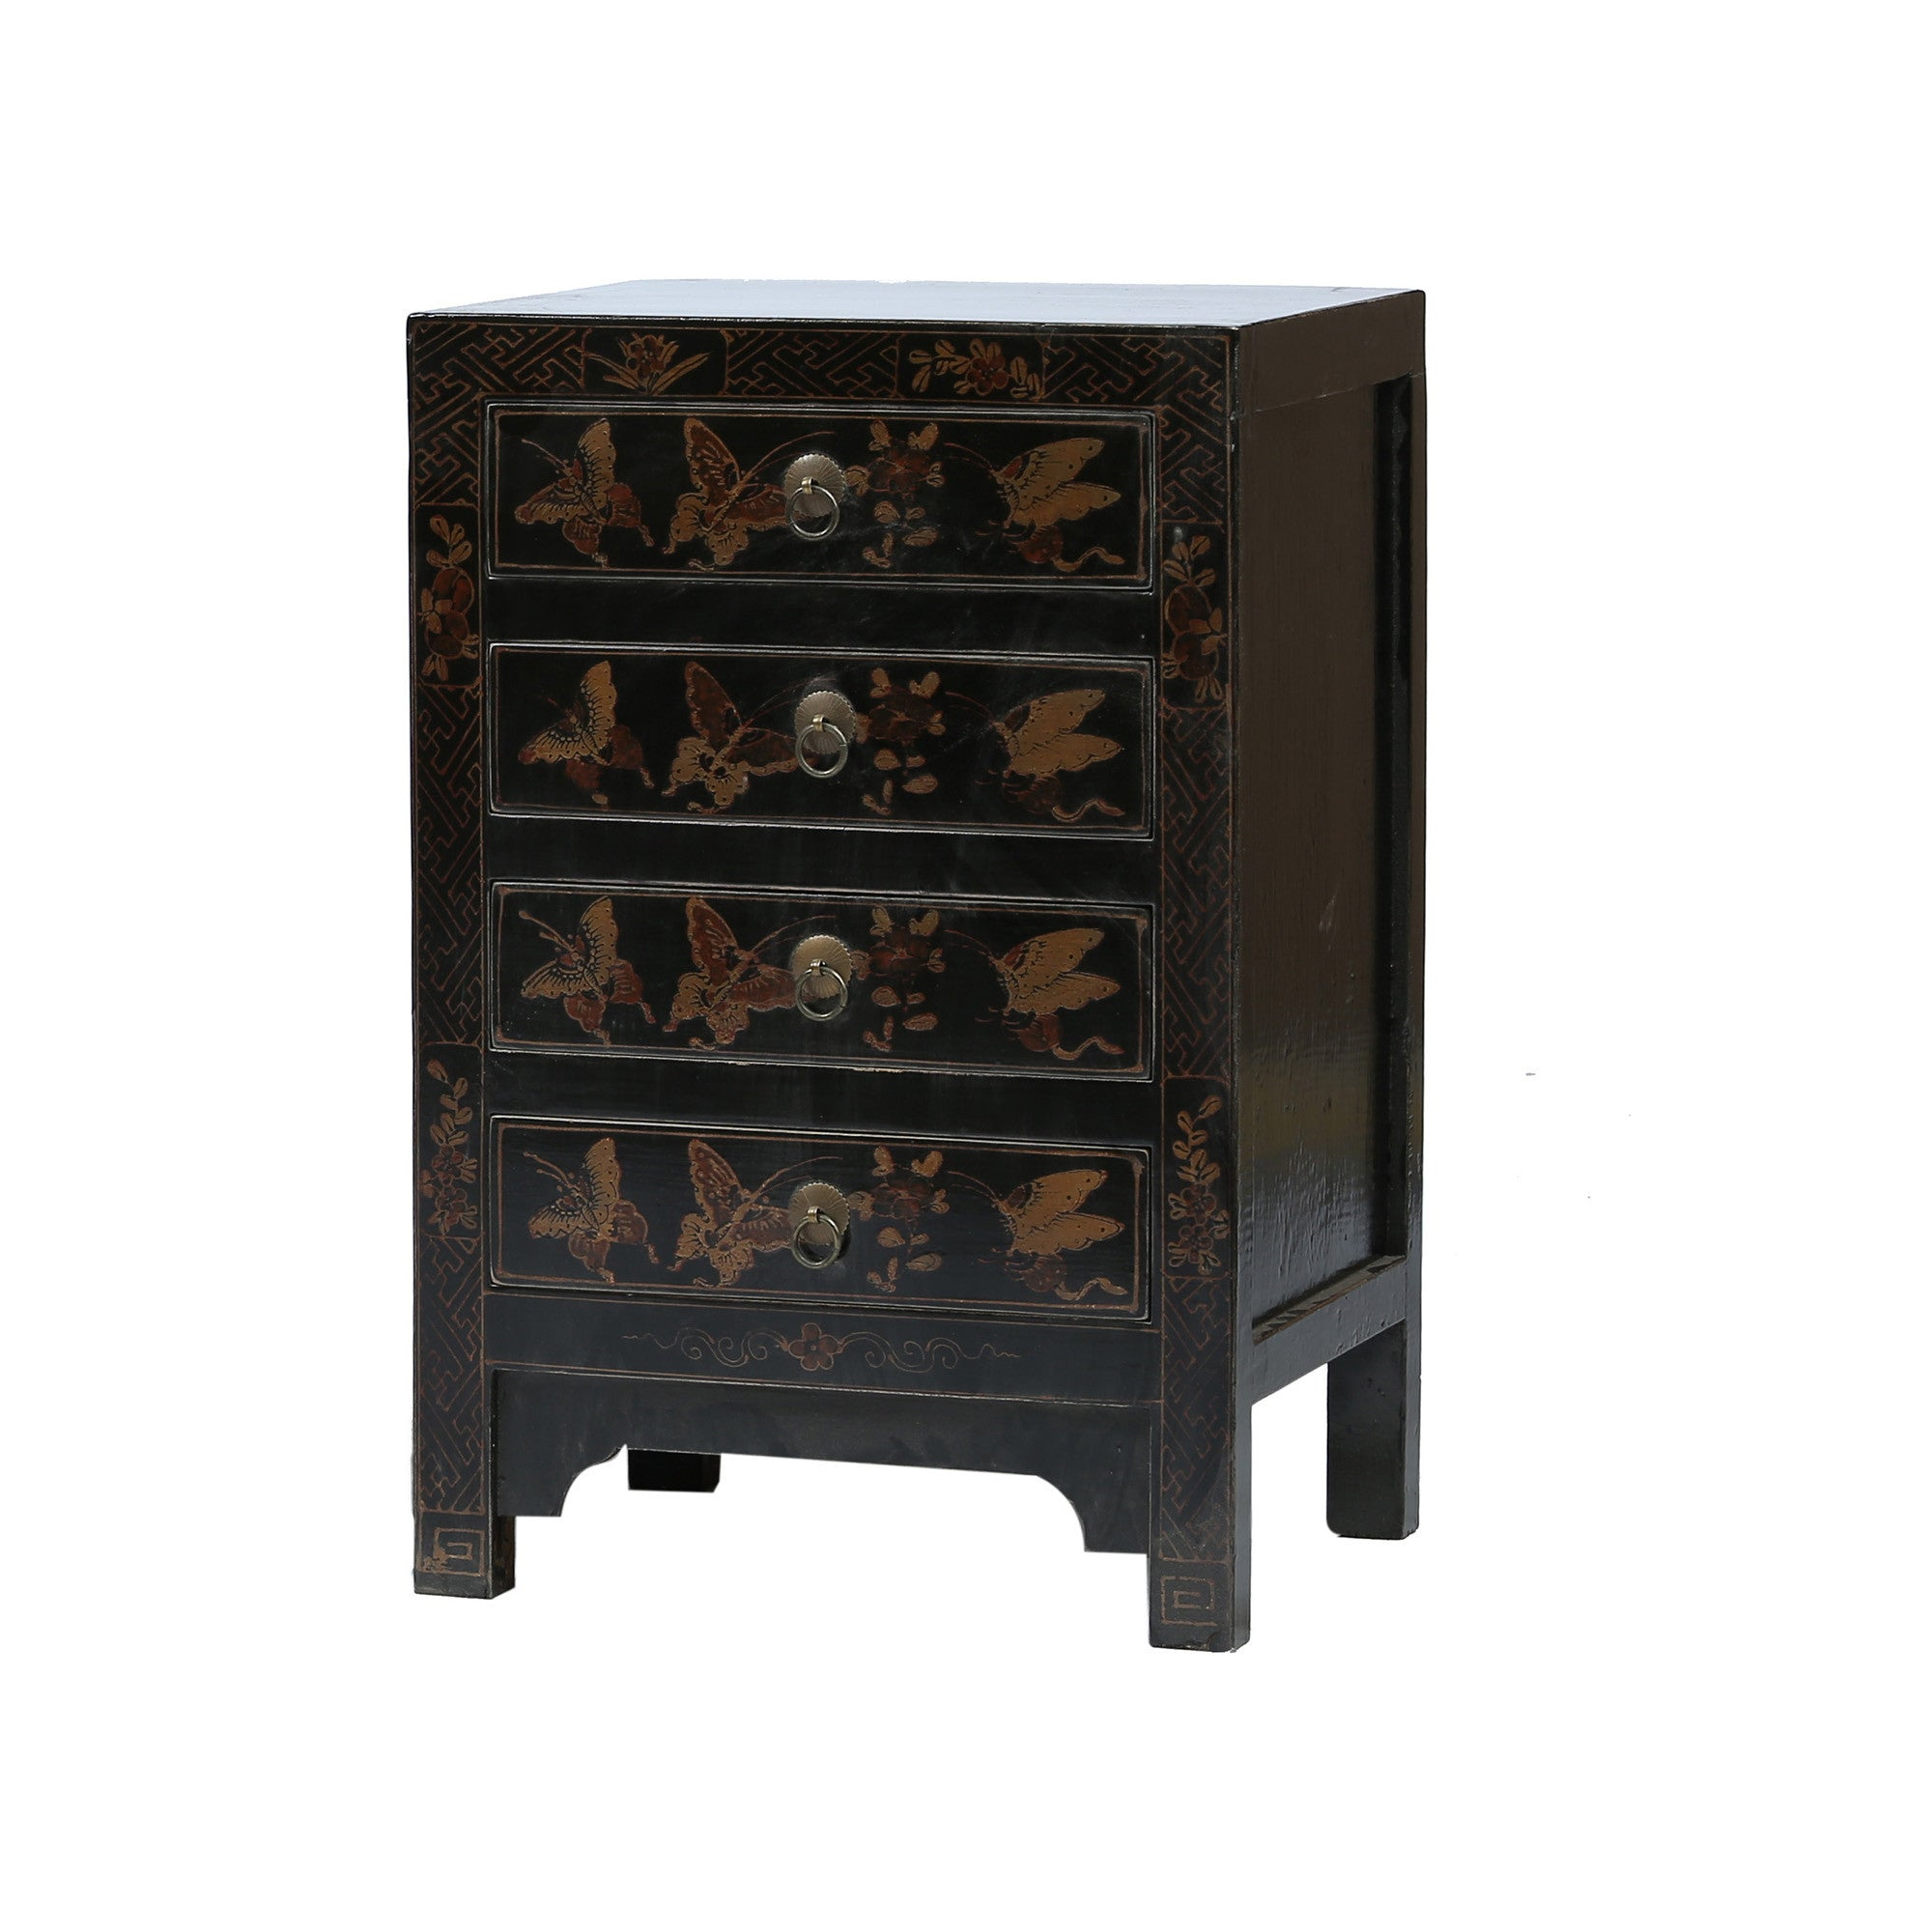 Black and Gold Bedside Chest of Drawers